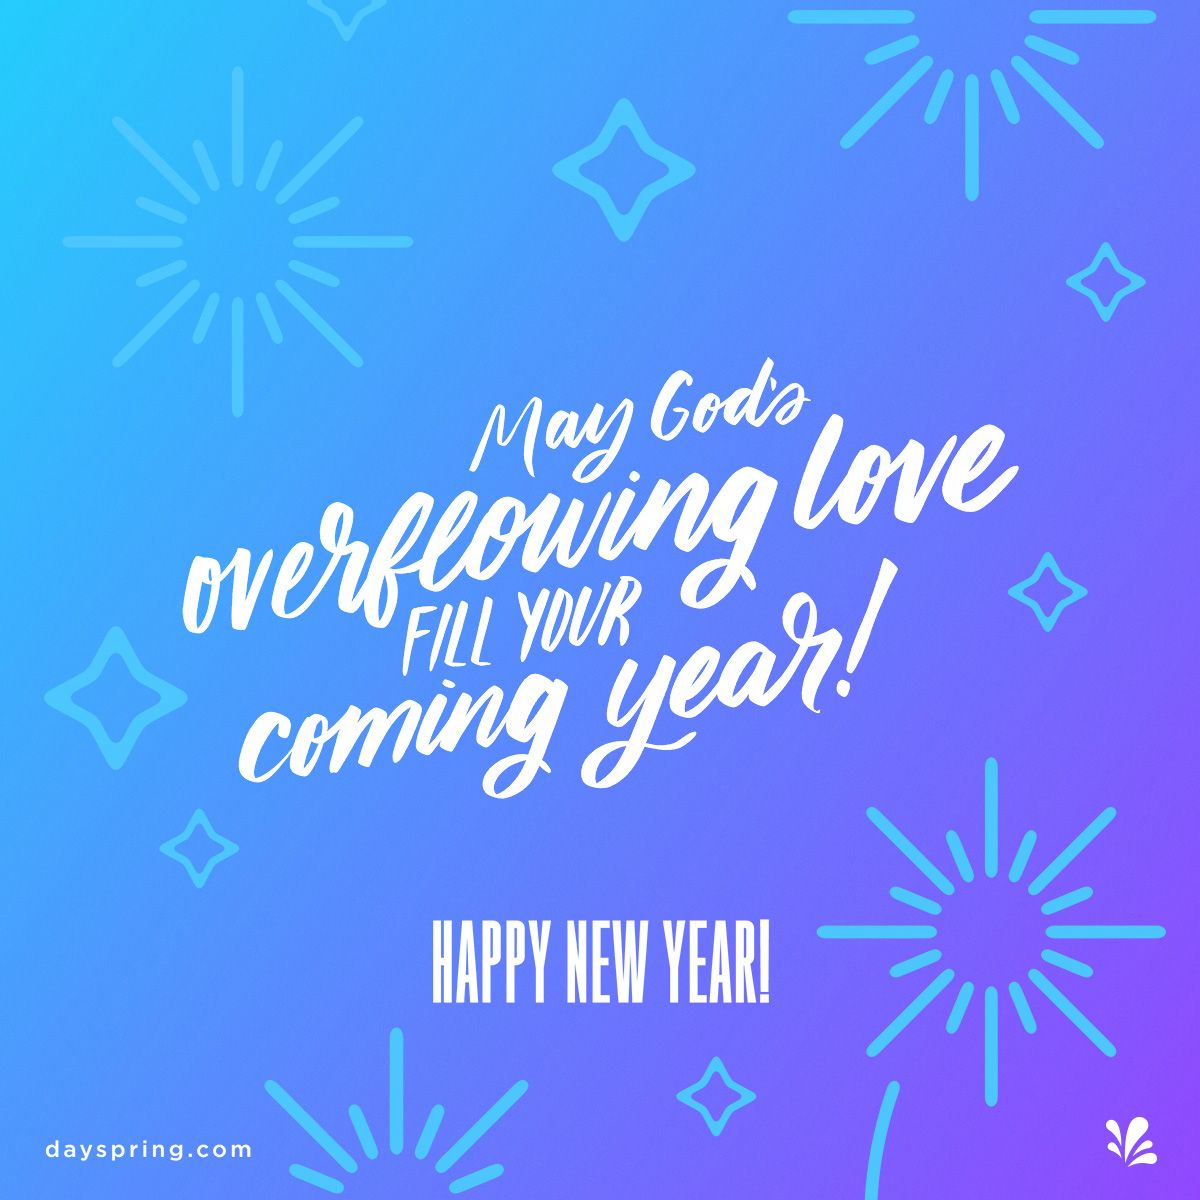 Ecards (With images) Happy new year greetings, New year